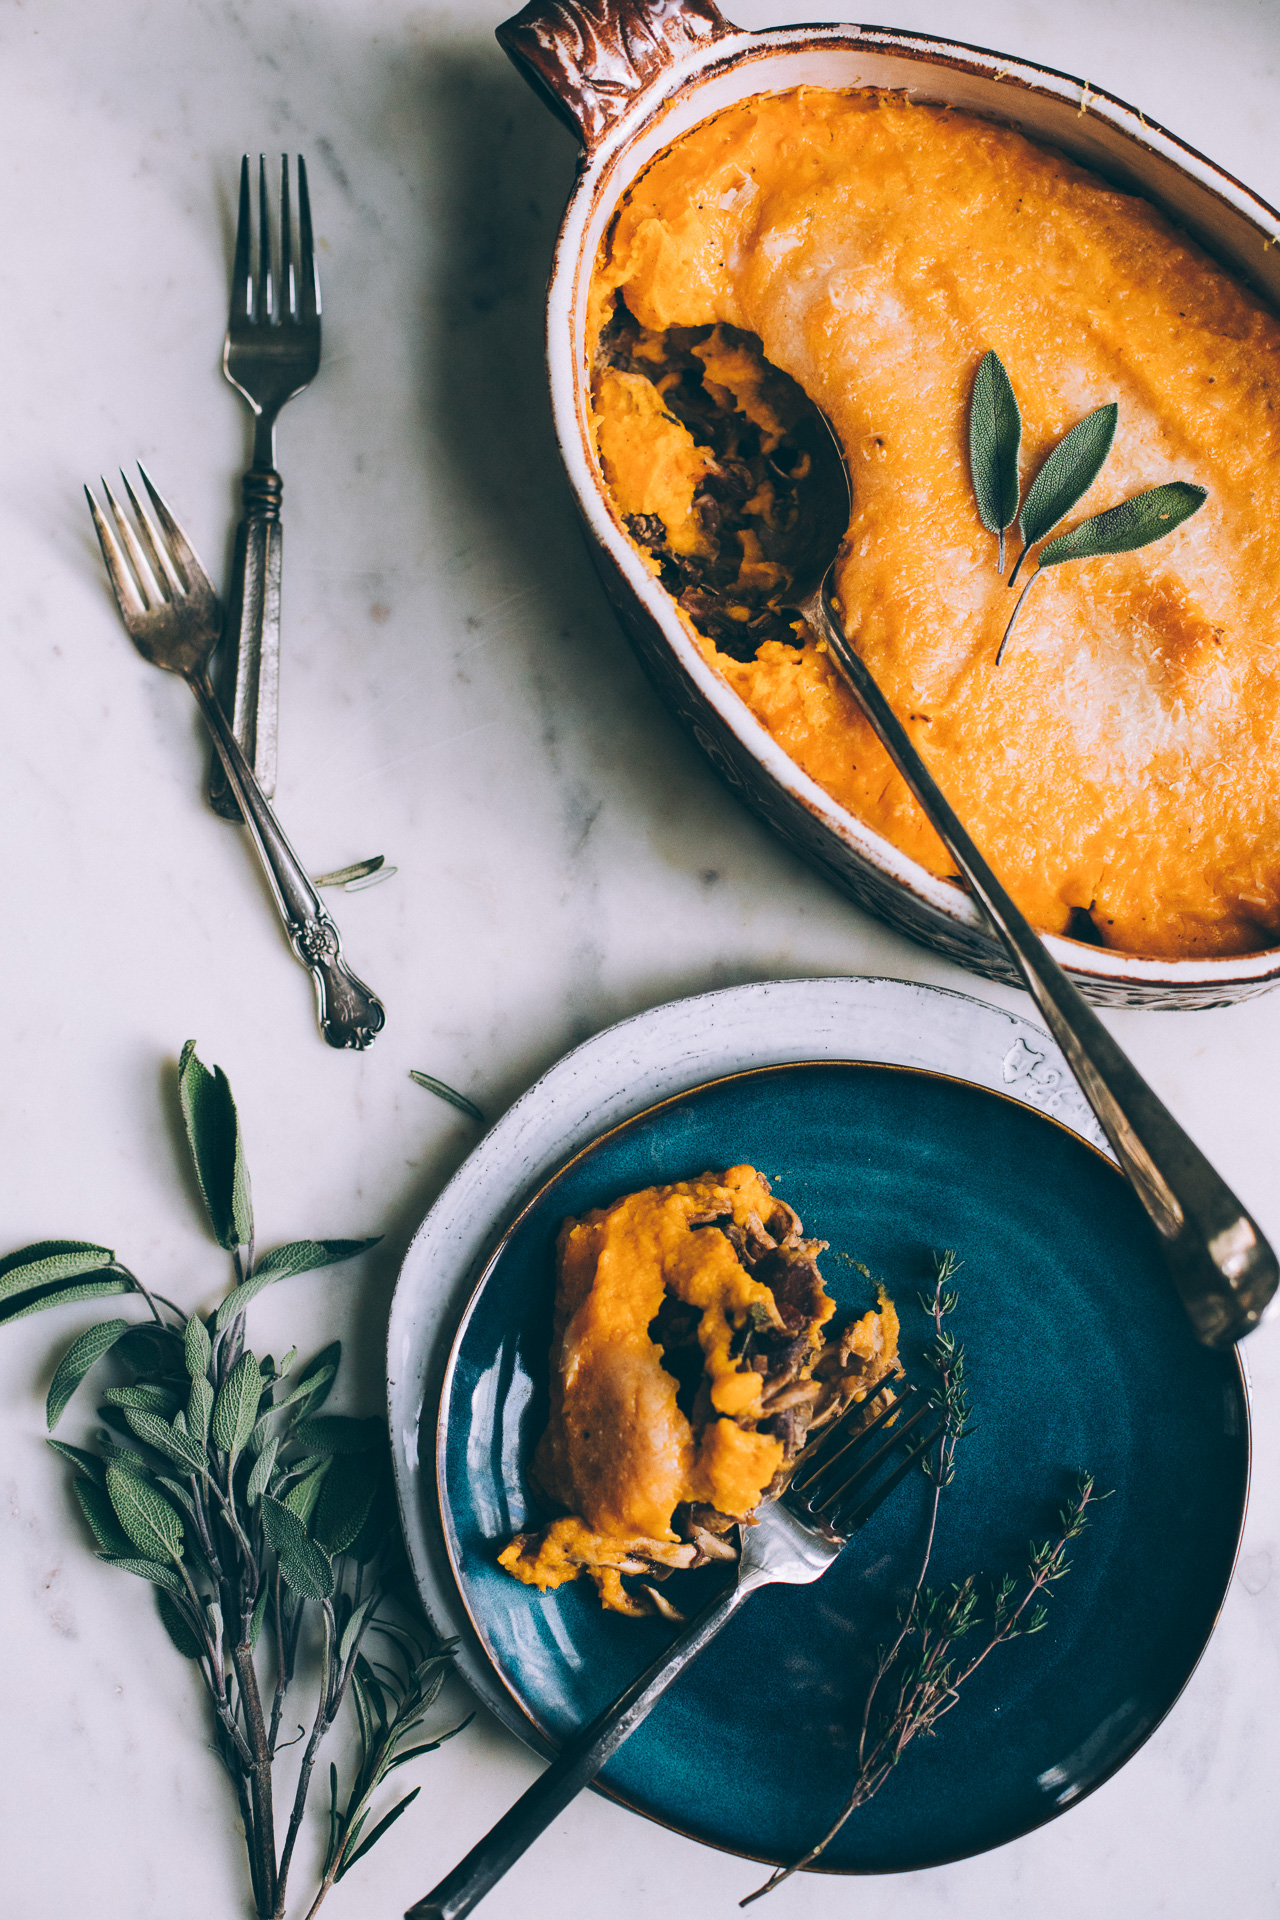 Inspirație de aici: https://www.willfrolicforfood.com/blog/2016/11/butternut-squash-shepherds-pie.html